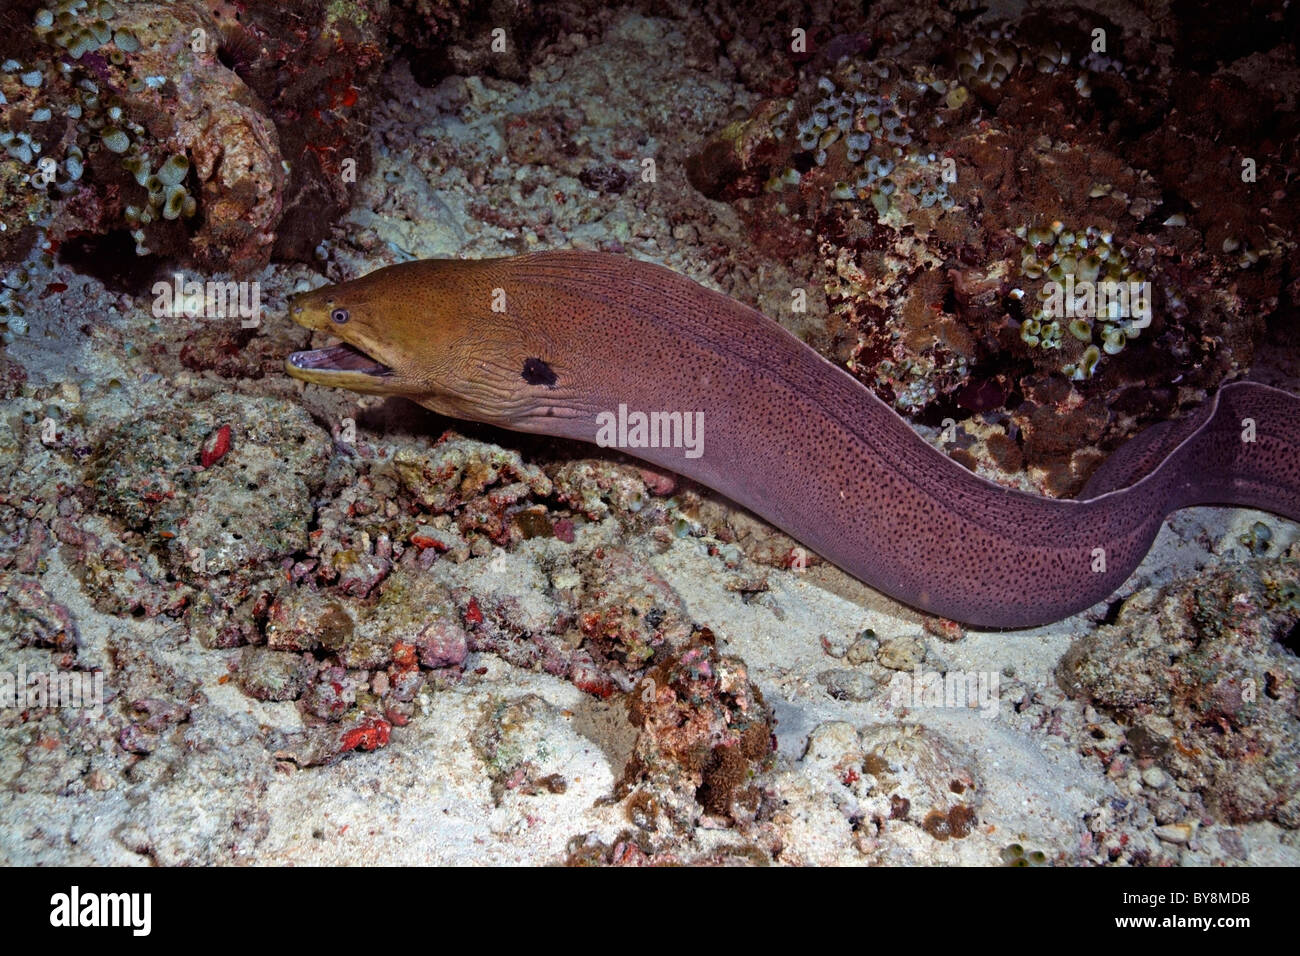 Giant Moray (Gymnothorax javanicus) hunting underwater - Stock Image